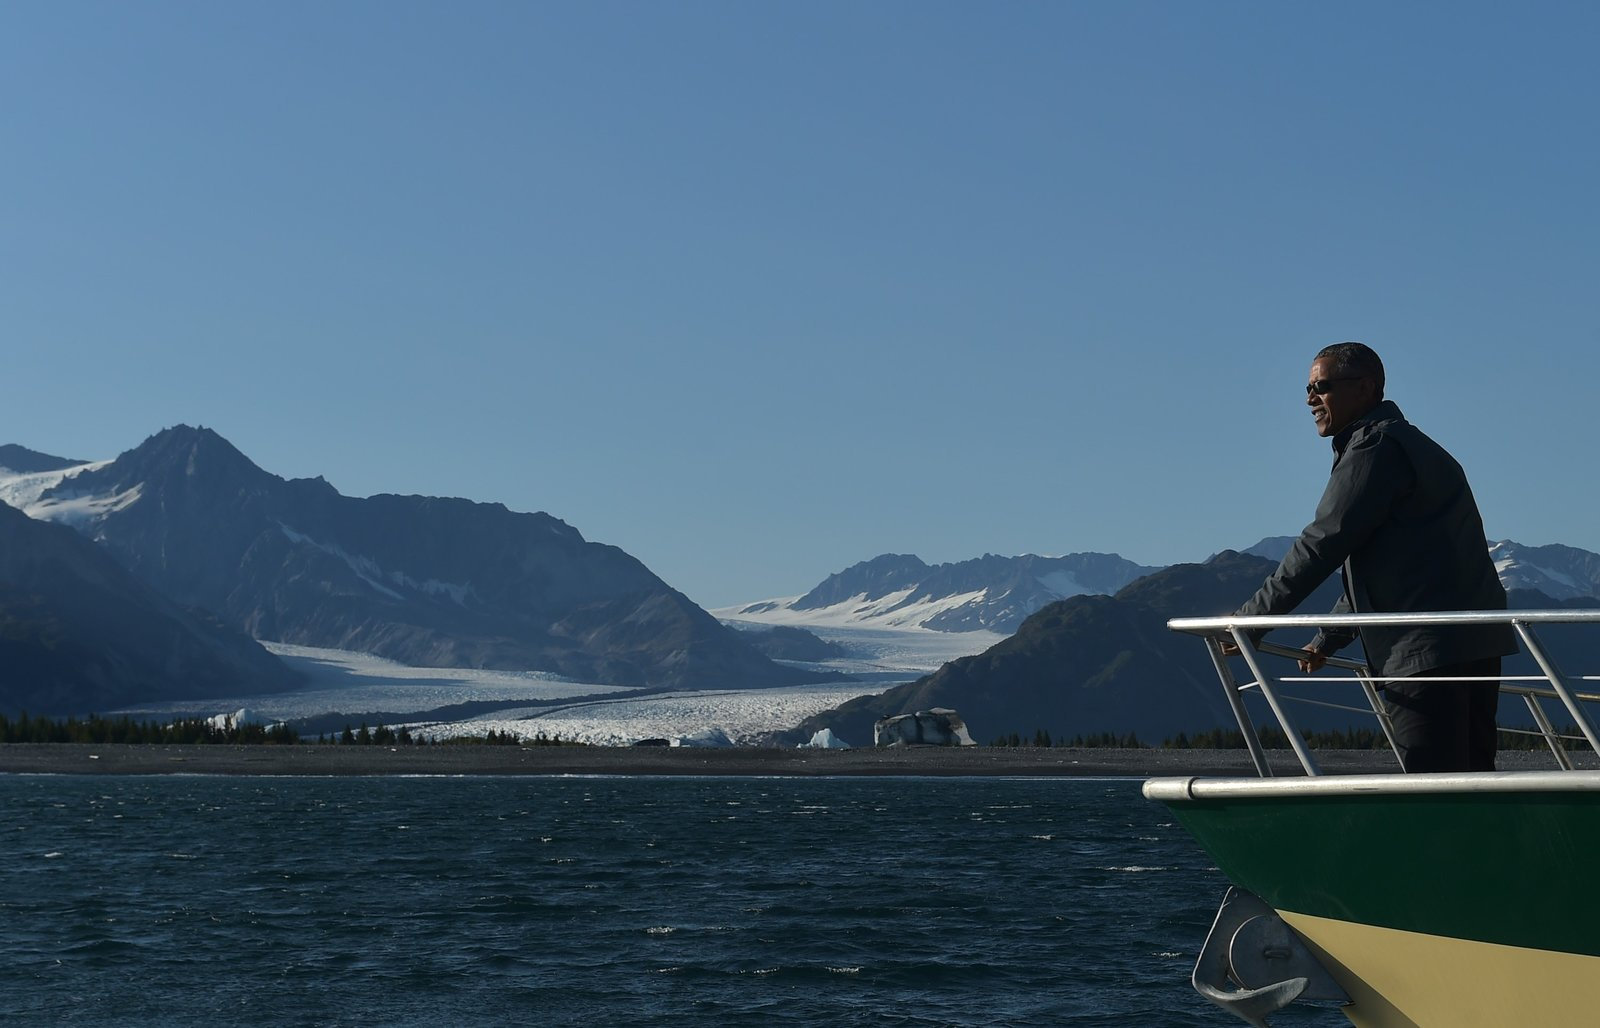 President Barack Obama took a trip to Alaska to see climate change firsthand